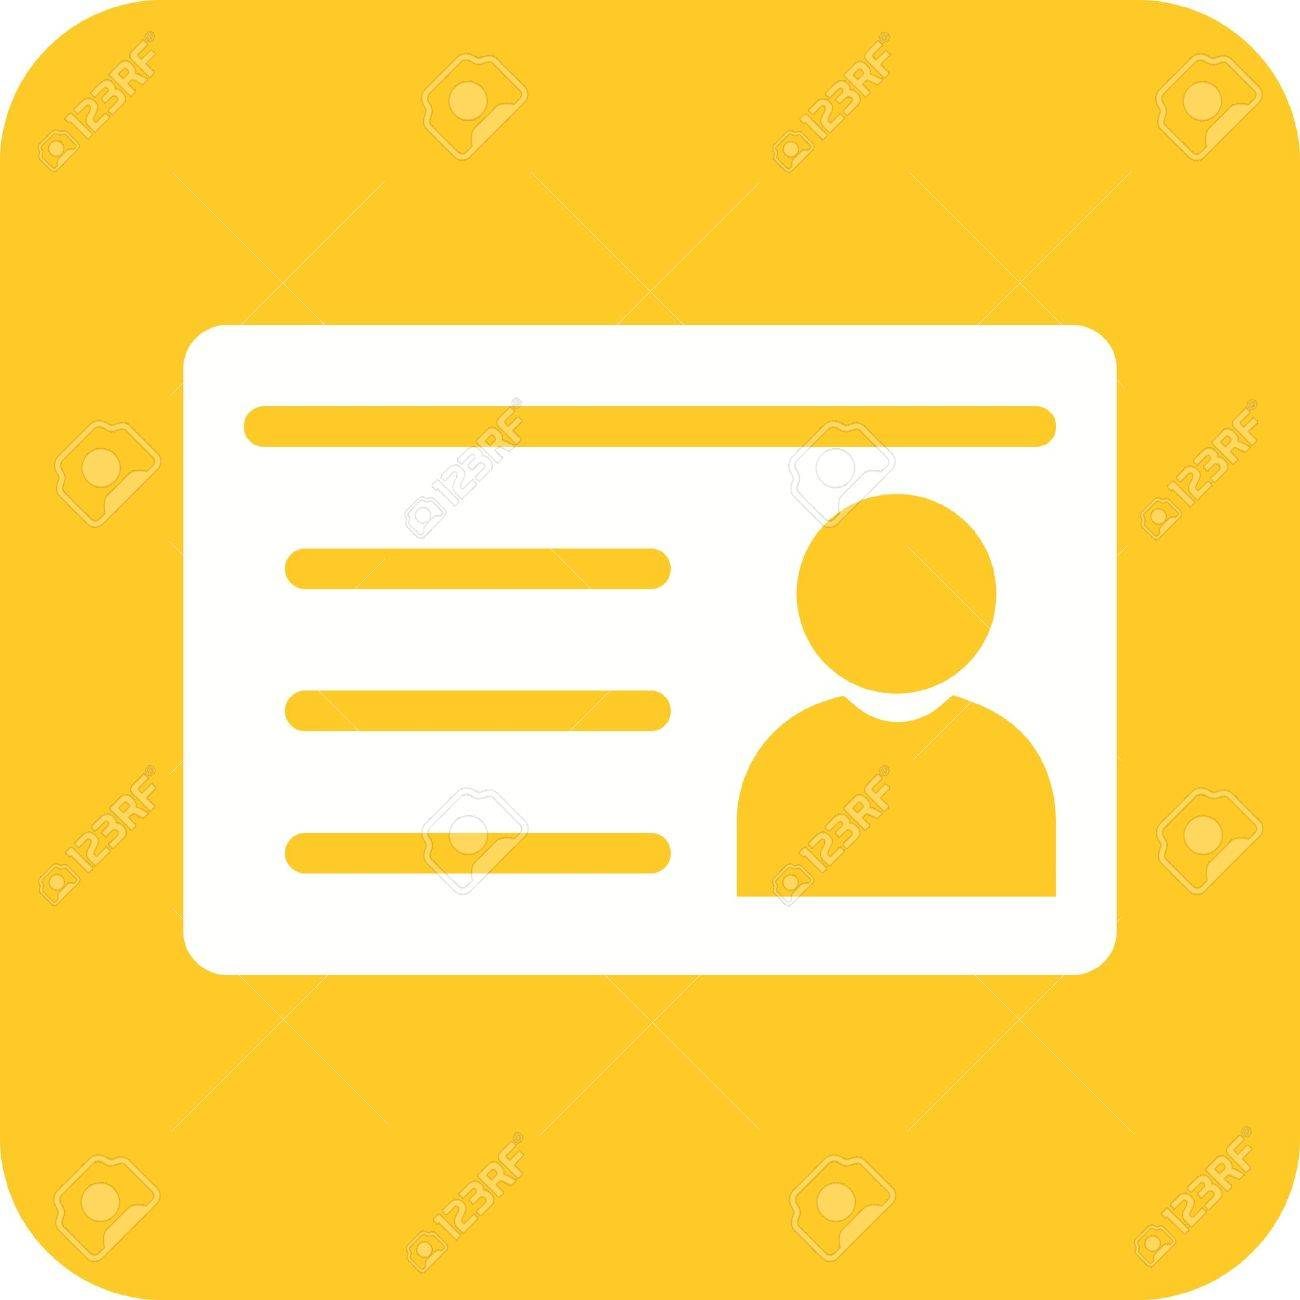 Student Image Card 40860926 Id Vectors And Stock Royalty Vector Illustration Can Icon Image Free Cliparts Also Identification